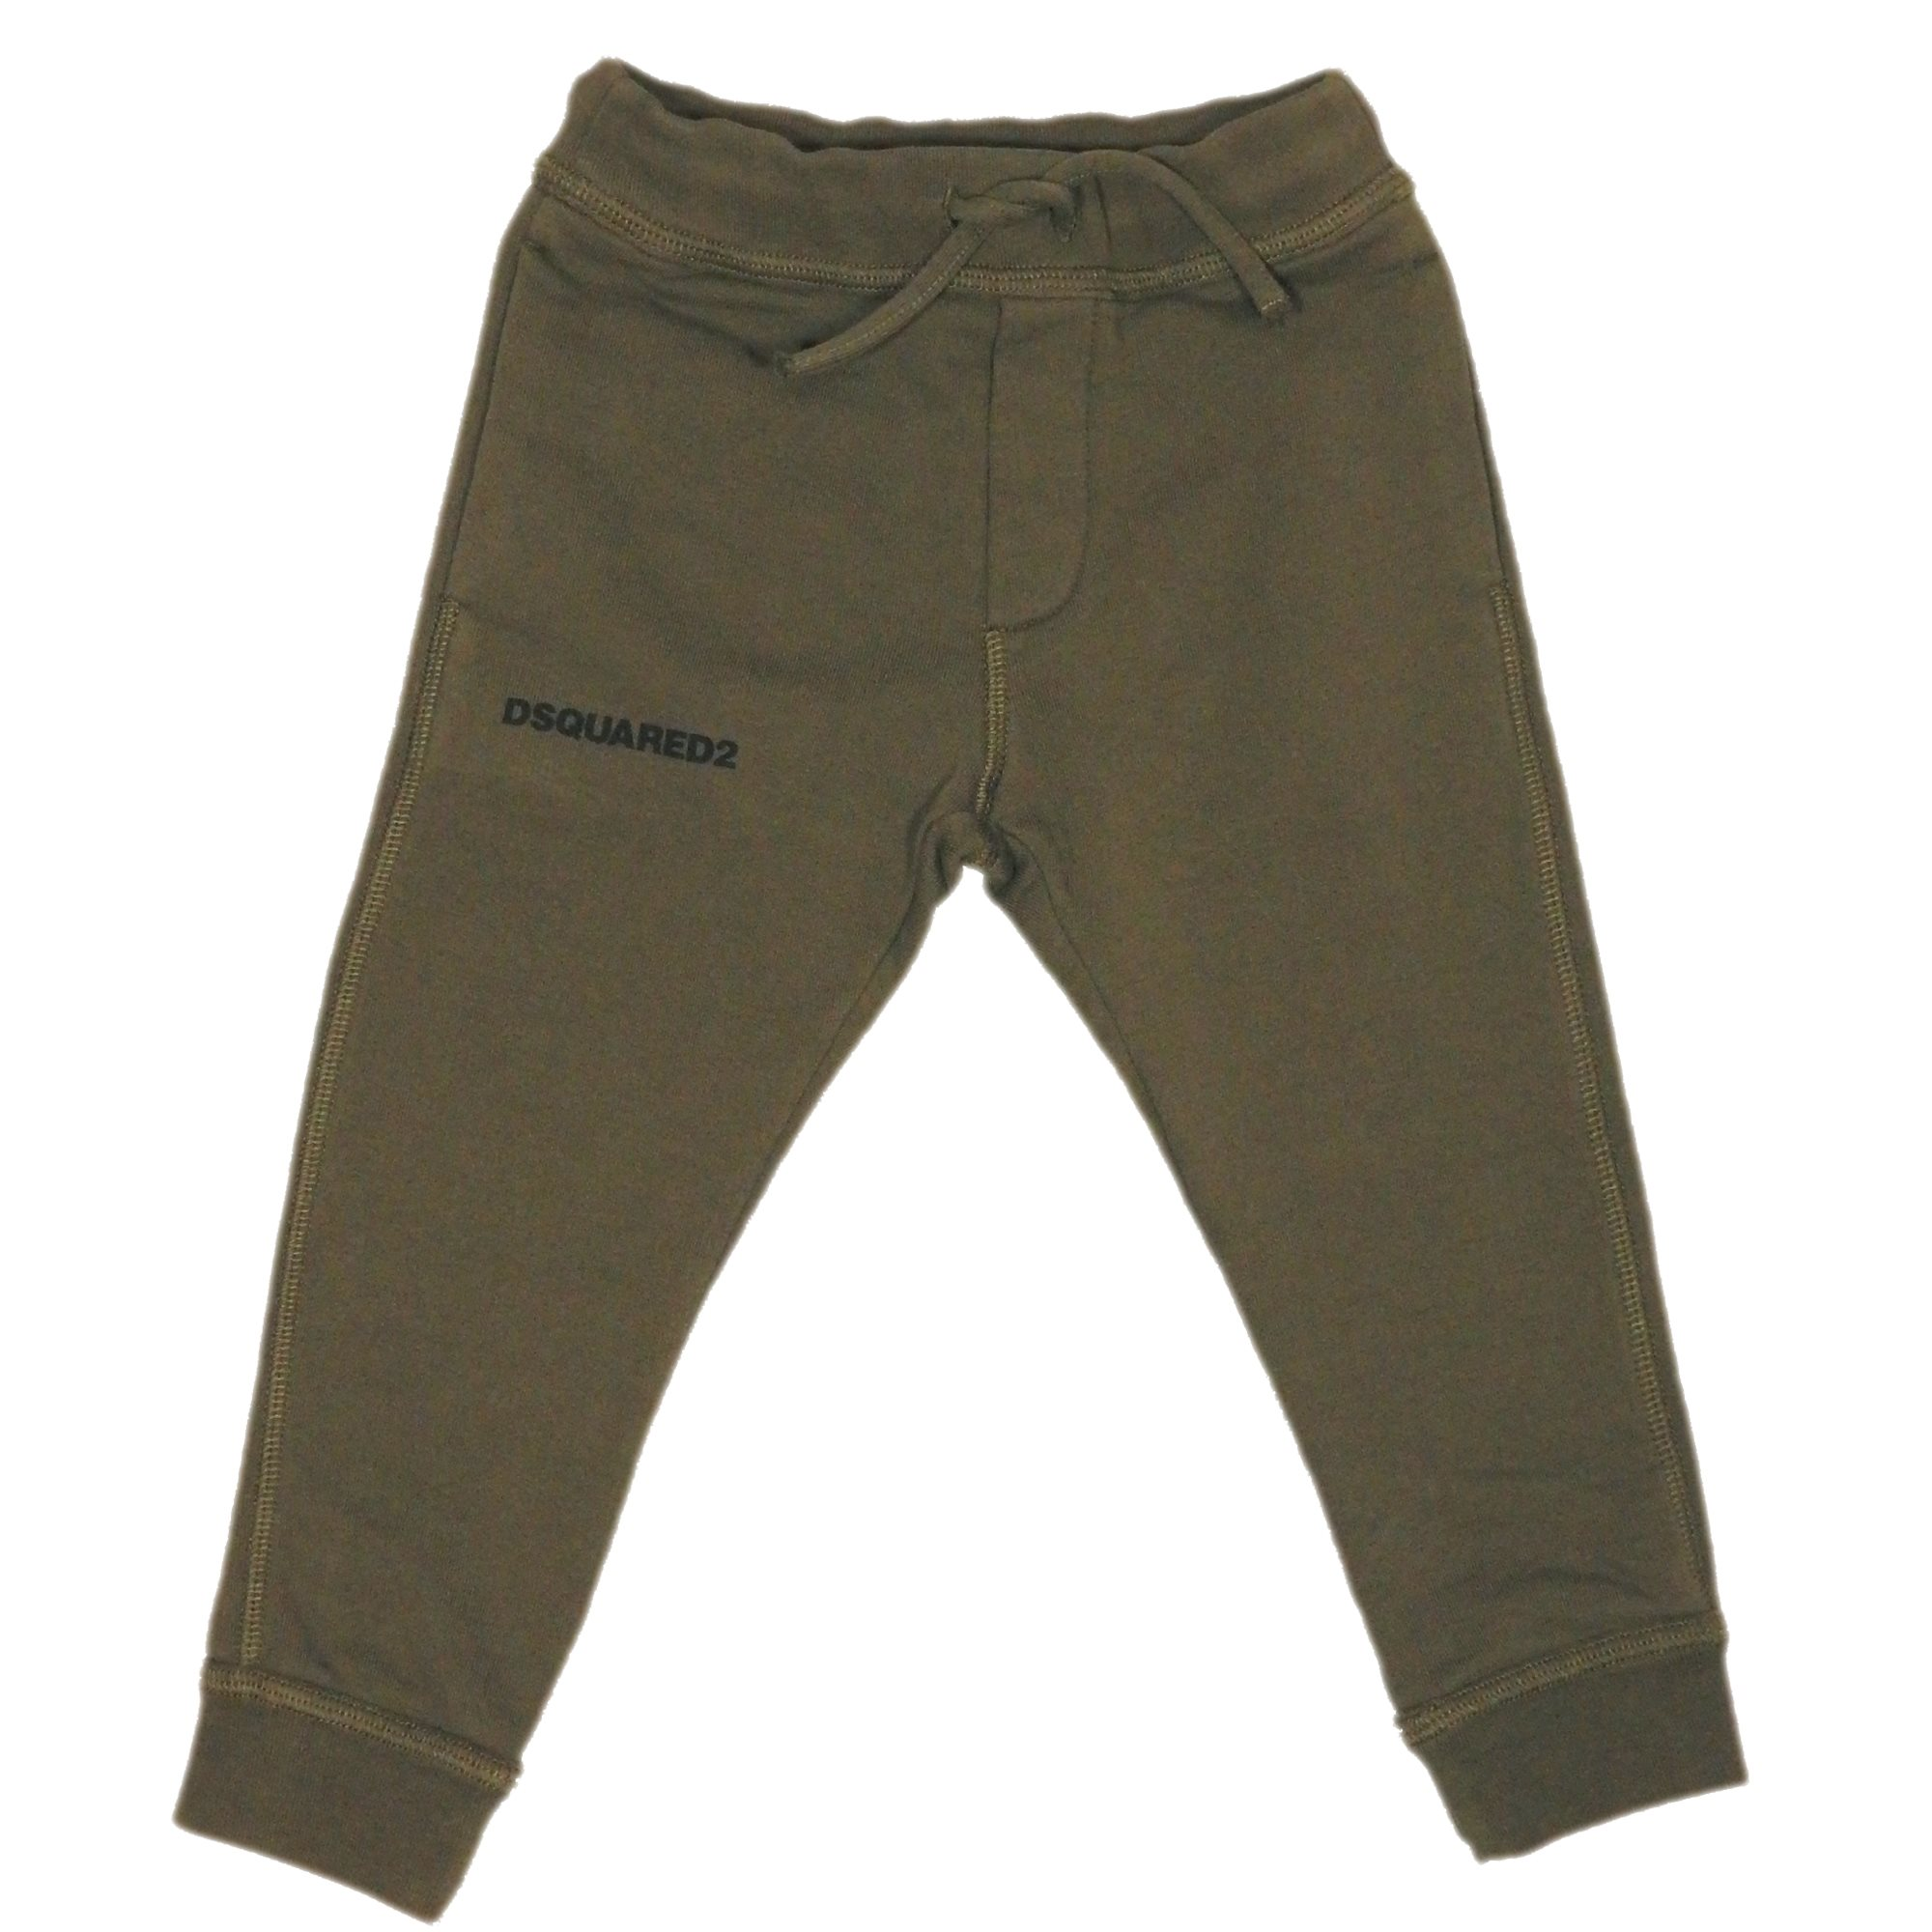 Leger Joggingbroek.Producten D2 Joggingbroek Leger La Boite Kids Fashion Shoes